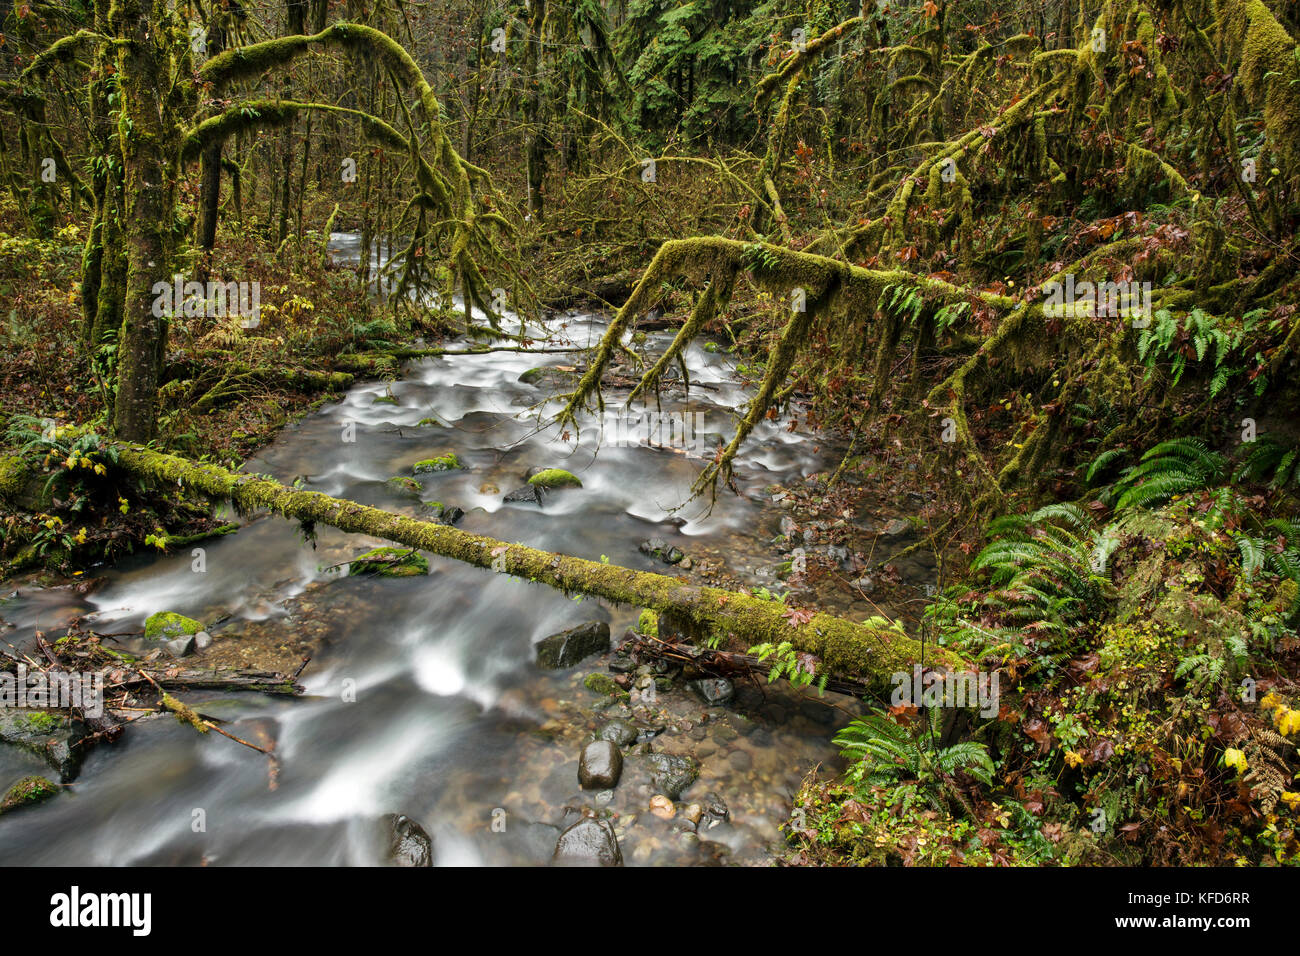 USA, Oregon, Santiam Pass, The Santiam River which is a tributary of